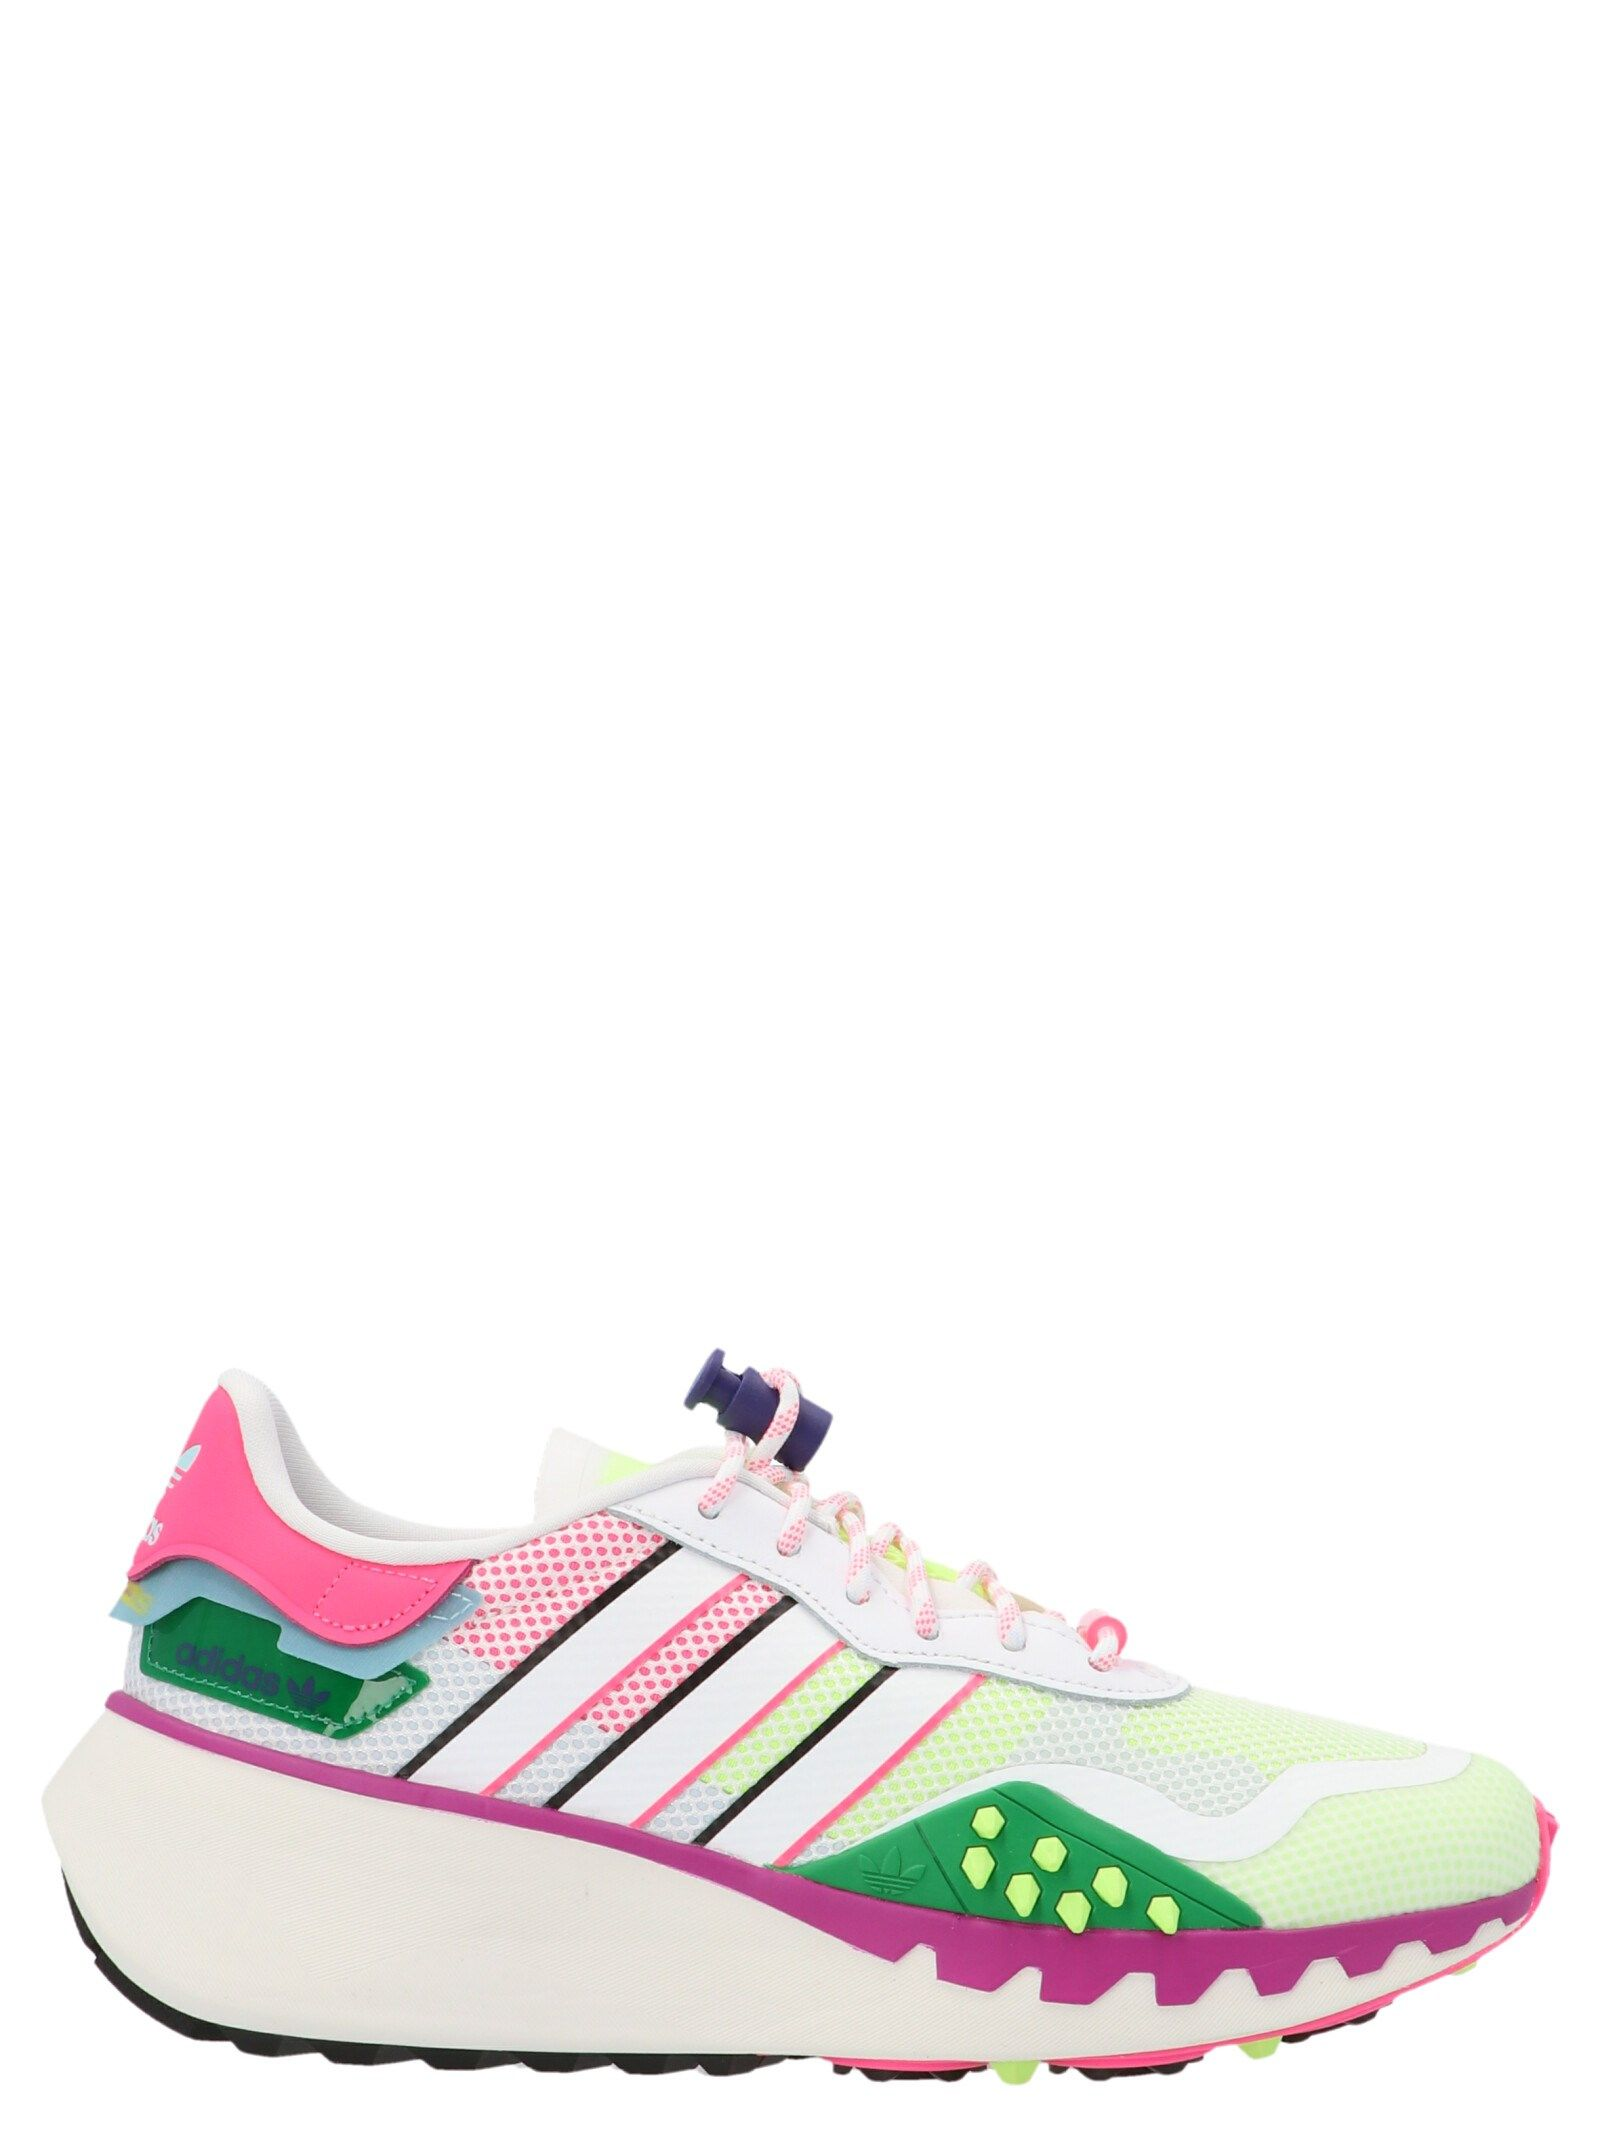 Adidas Originals Sneakers ADIDAS WOMEN'S FX6237 MULTICOLOR SYNTHETIC FIBERS SNEAKERS